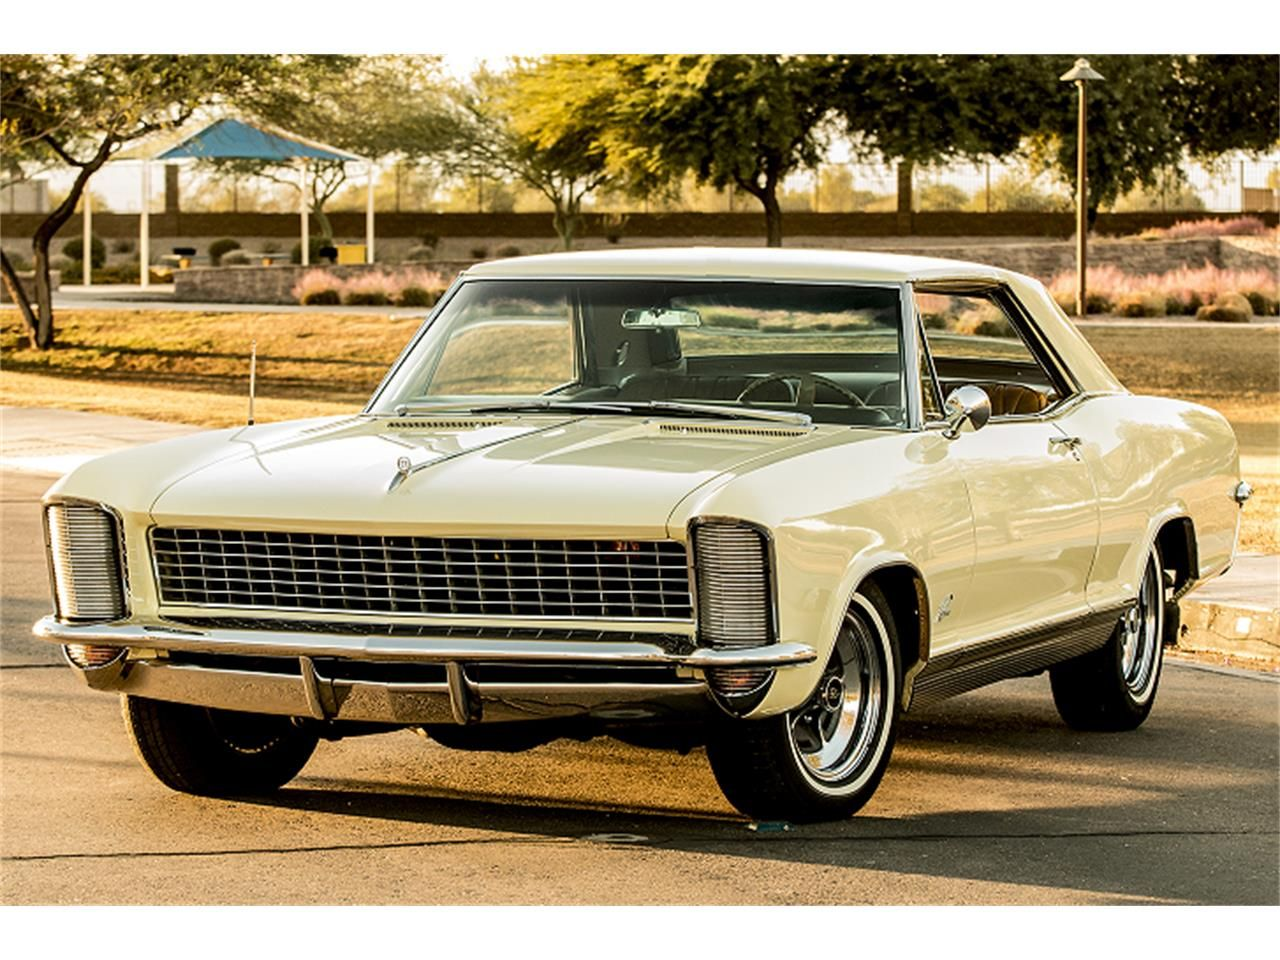 1965 Buick Riviera (With images) Buick riviera, 1965